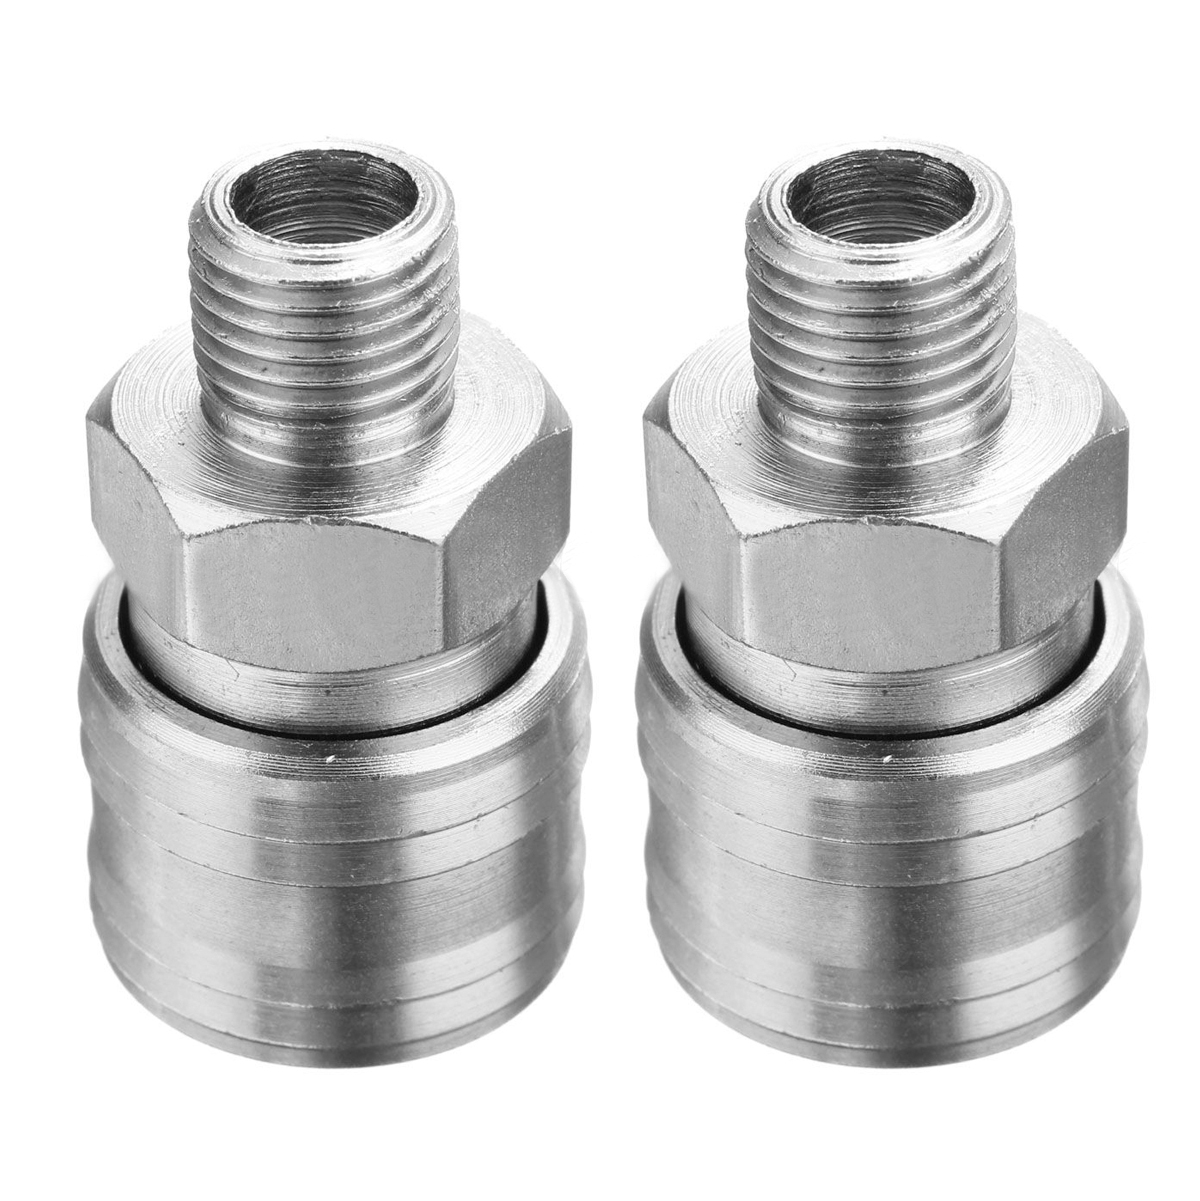 2pcs Euro Female Air Quick Connectors Air Line Hose Compressor Connector Fitting 1/4 BSP Male Thread 45x25mm 2pcs air line hose connector euro female quick release fitting with 1 4 bsp male thread mayitr for home tool accessories